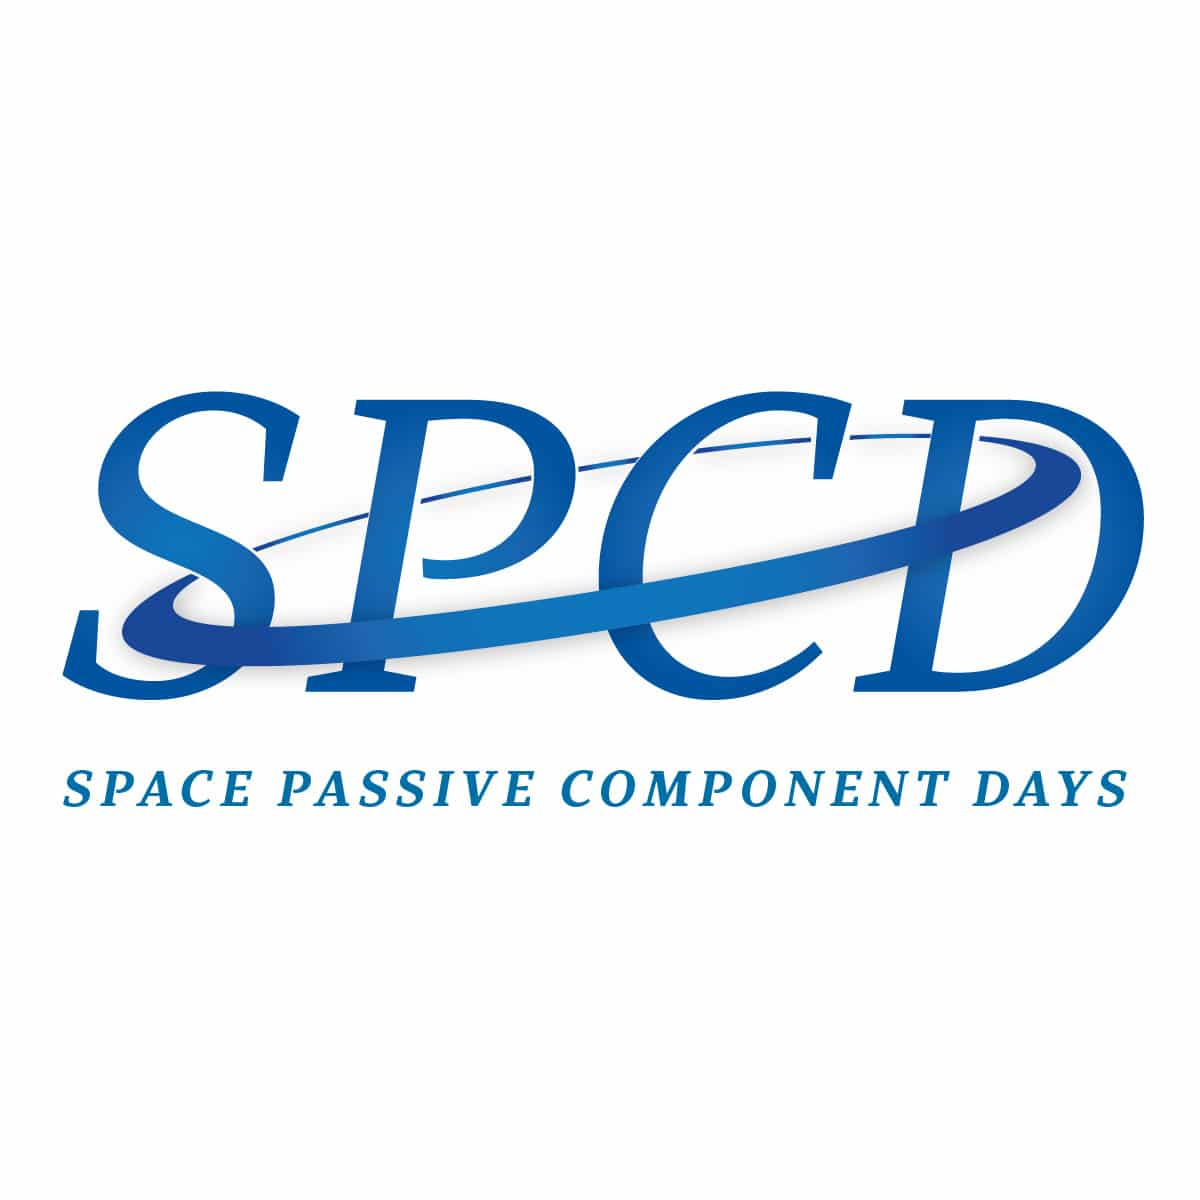 ESA Space Passive Components Days 3rd Addition 2018 Announced